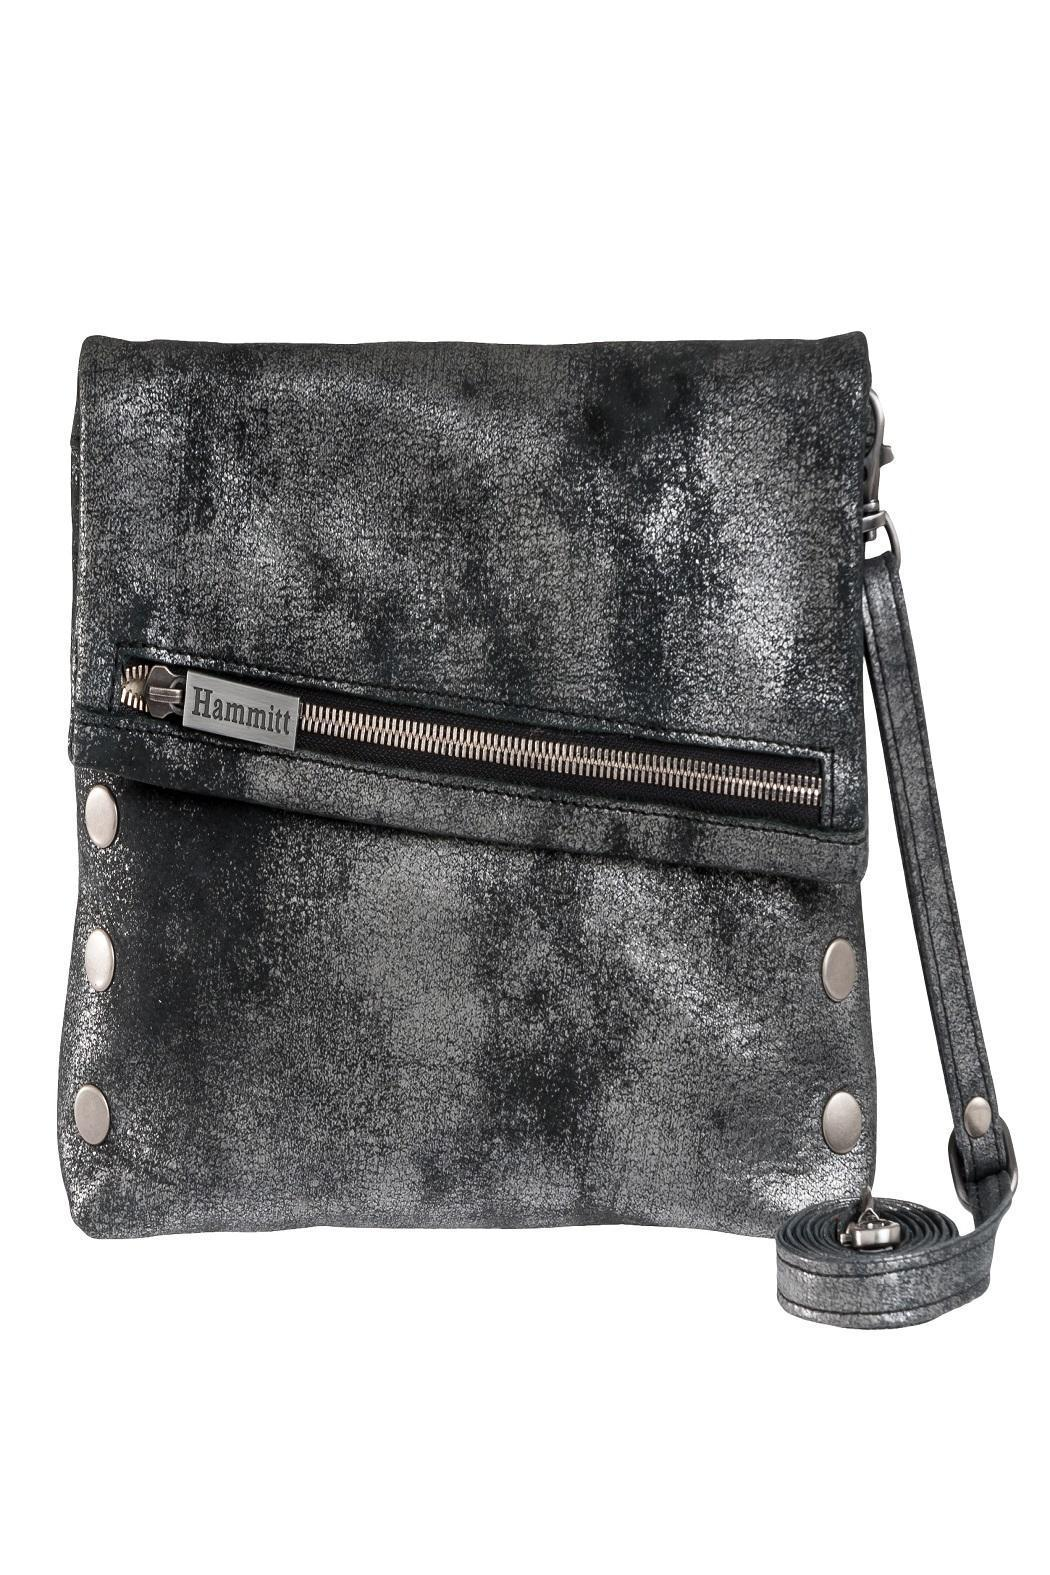 Hammitt Los Angeles Leather Crossbody Bag - Front Cropped Image